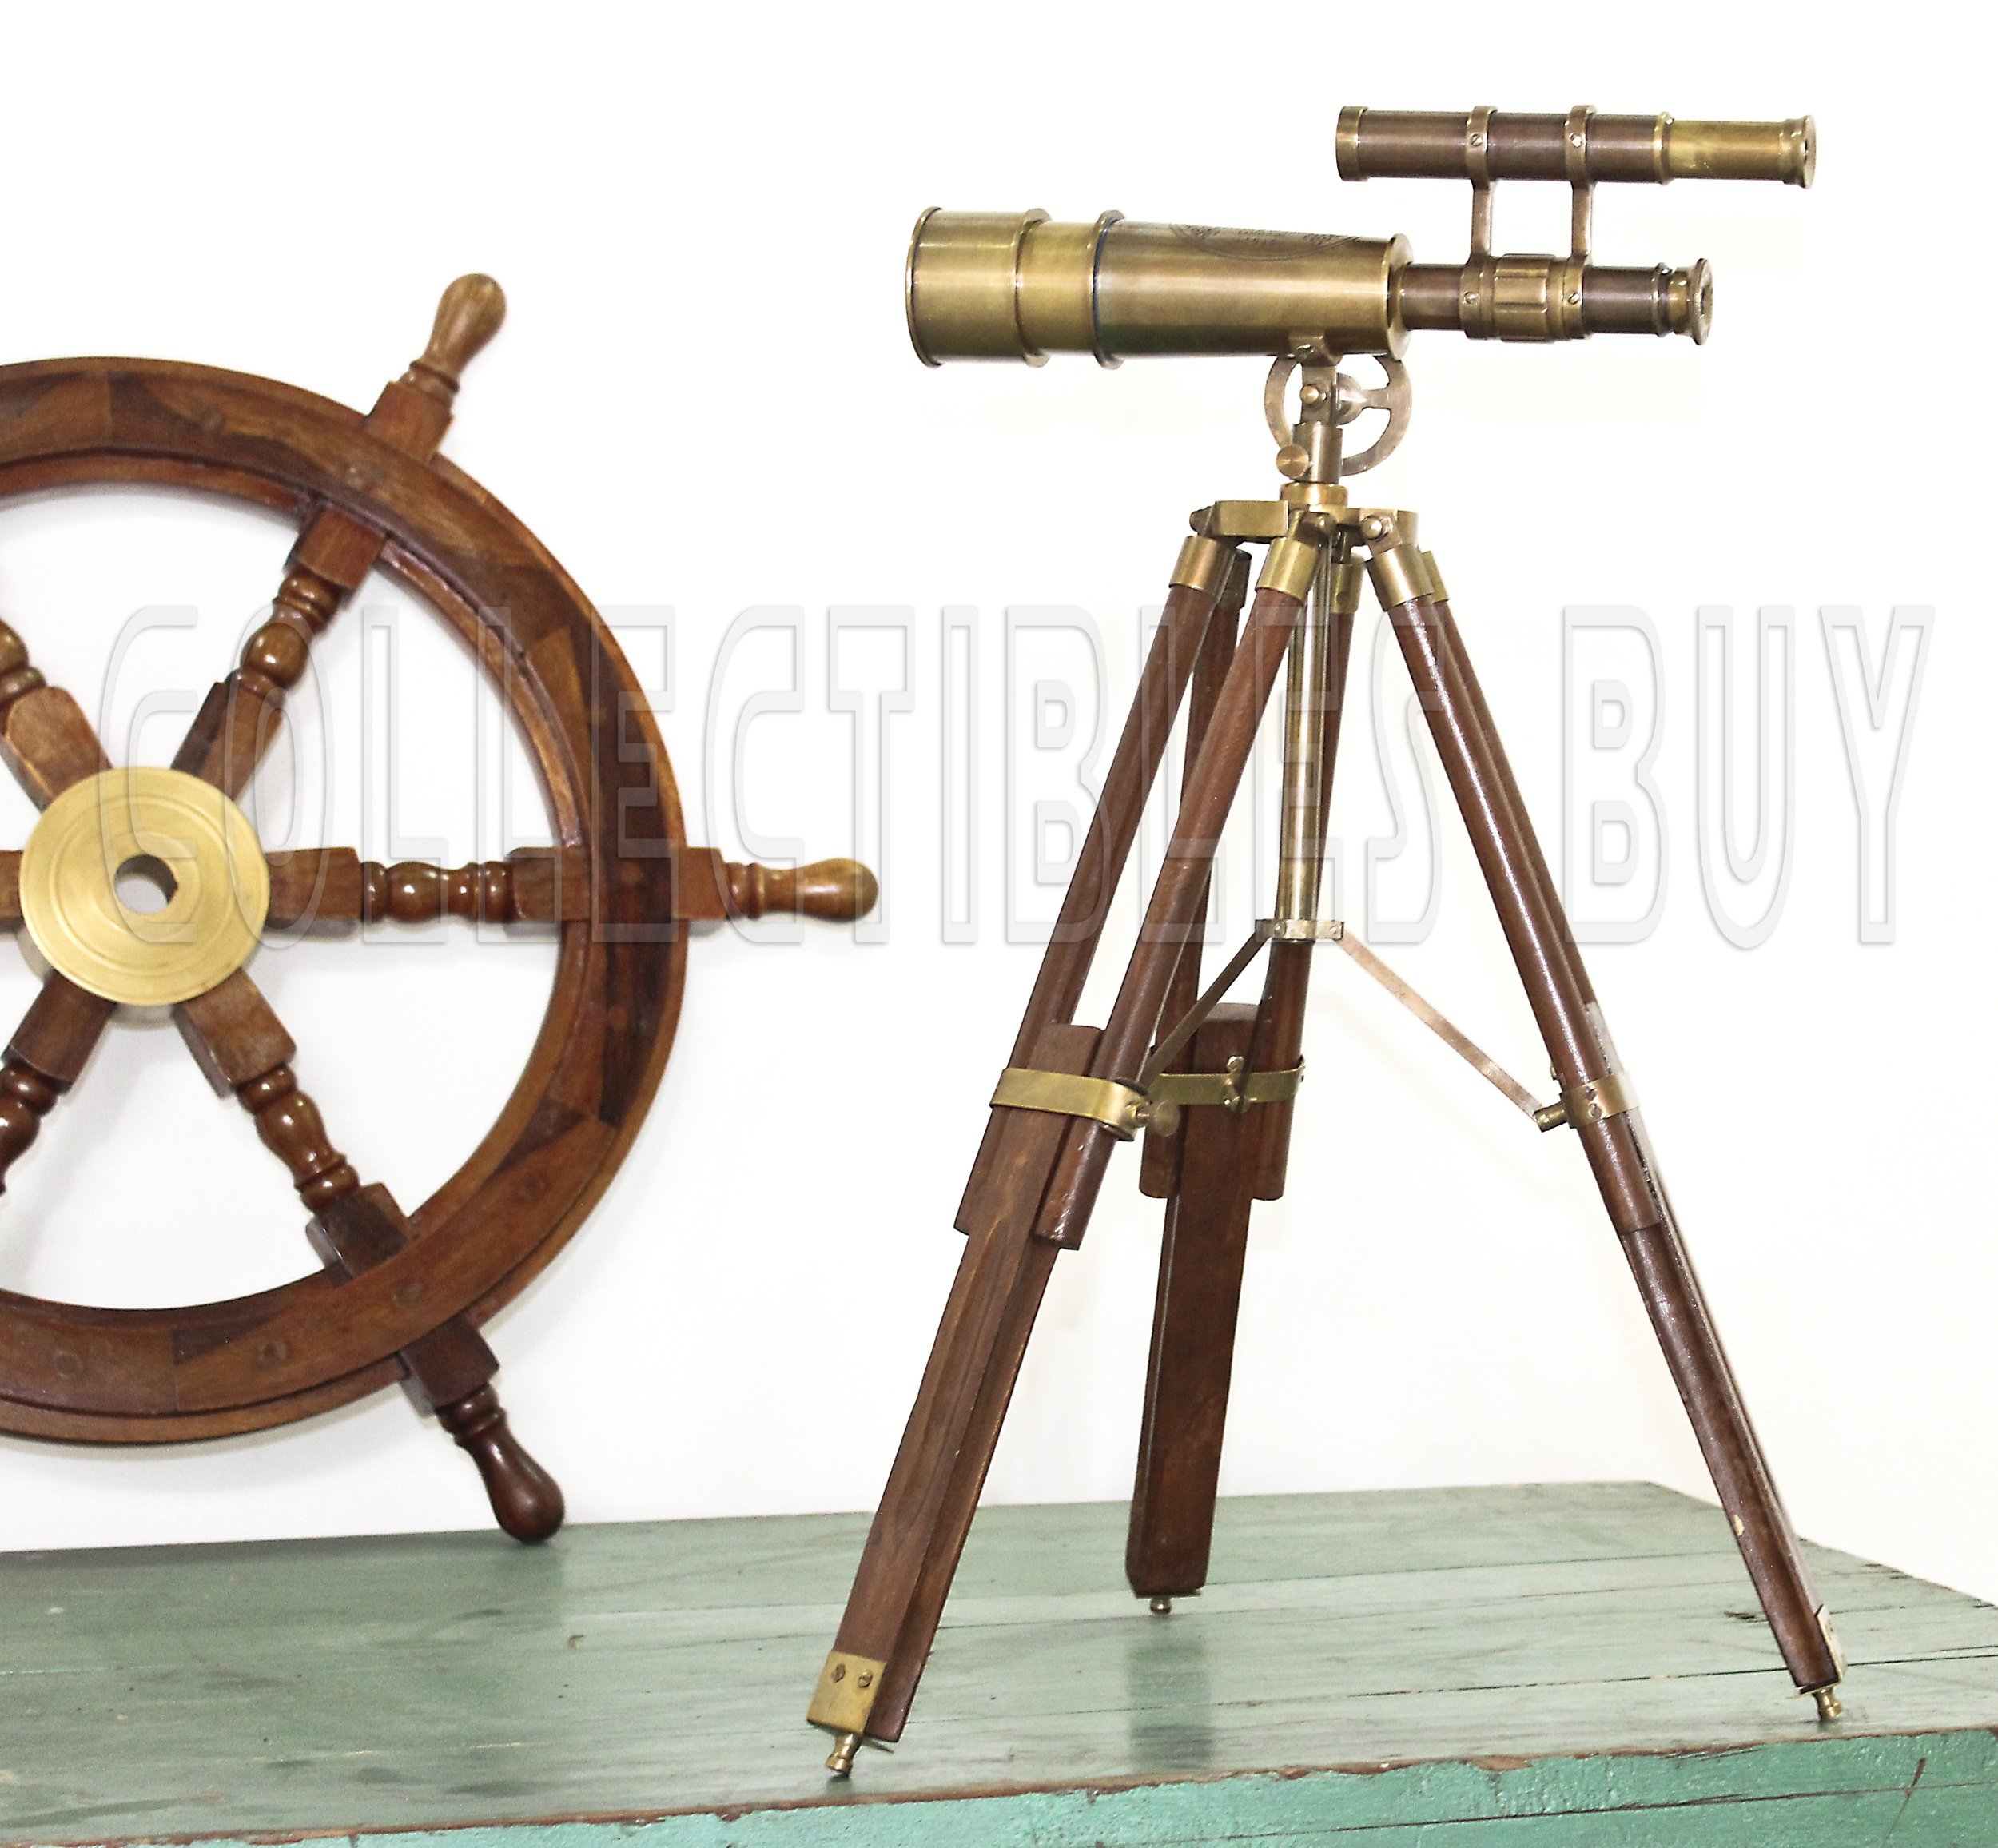 Table Décor Telescope Vintage Marine Gift Functional Instrument Collectibles Gift Item (Brass Antique + Wood)